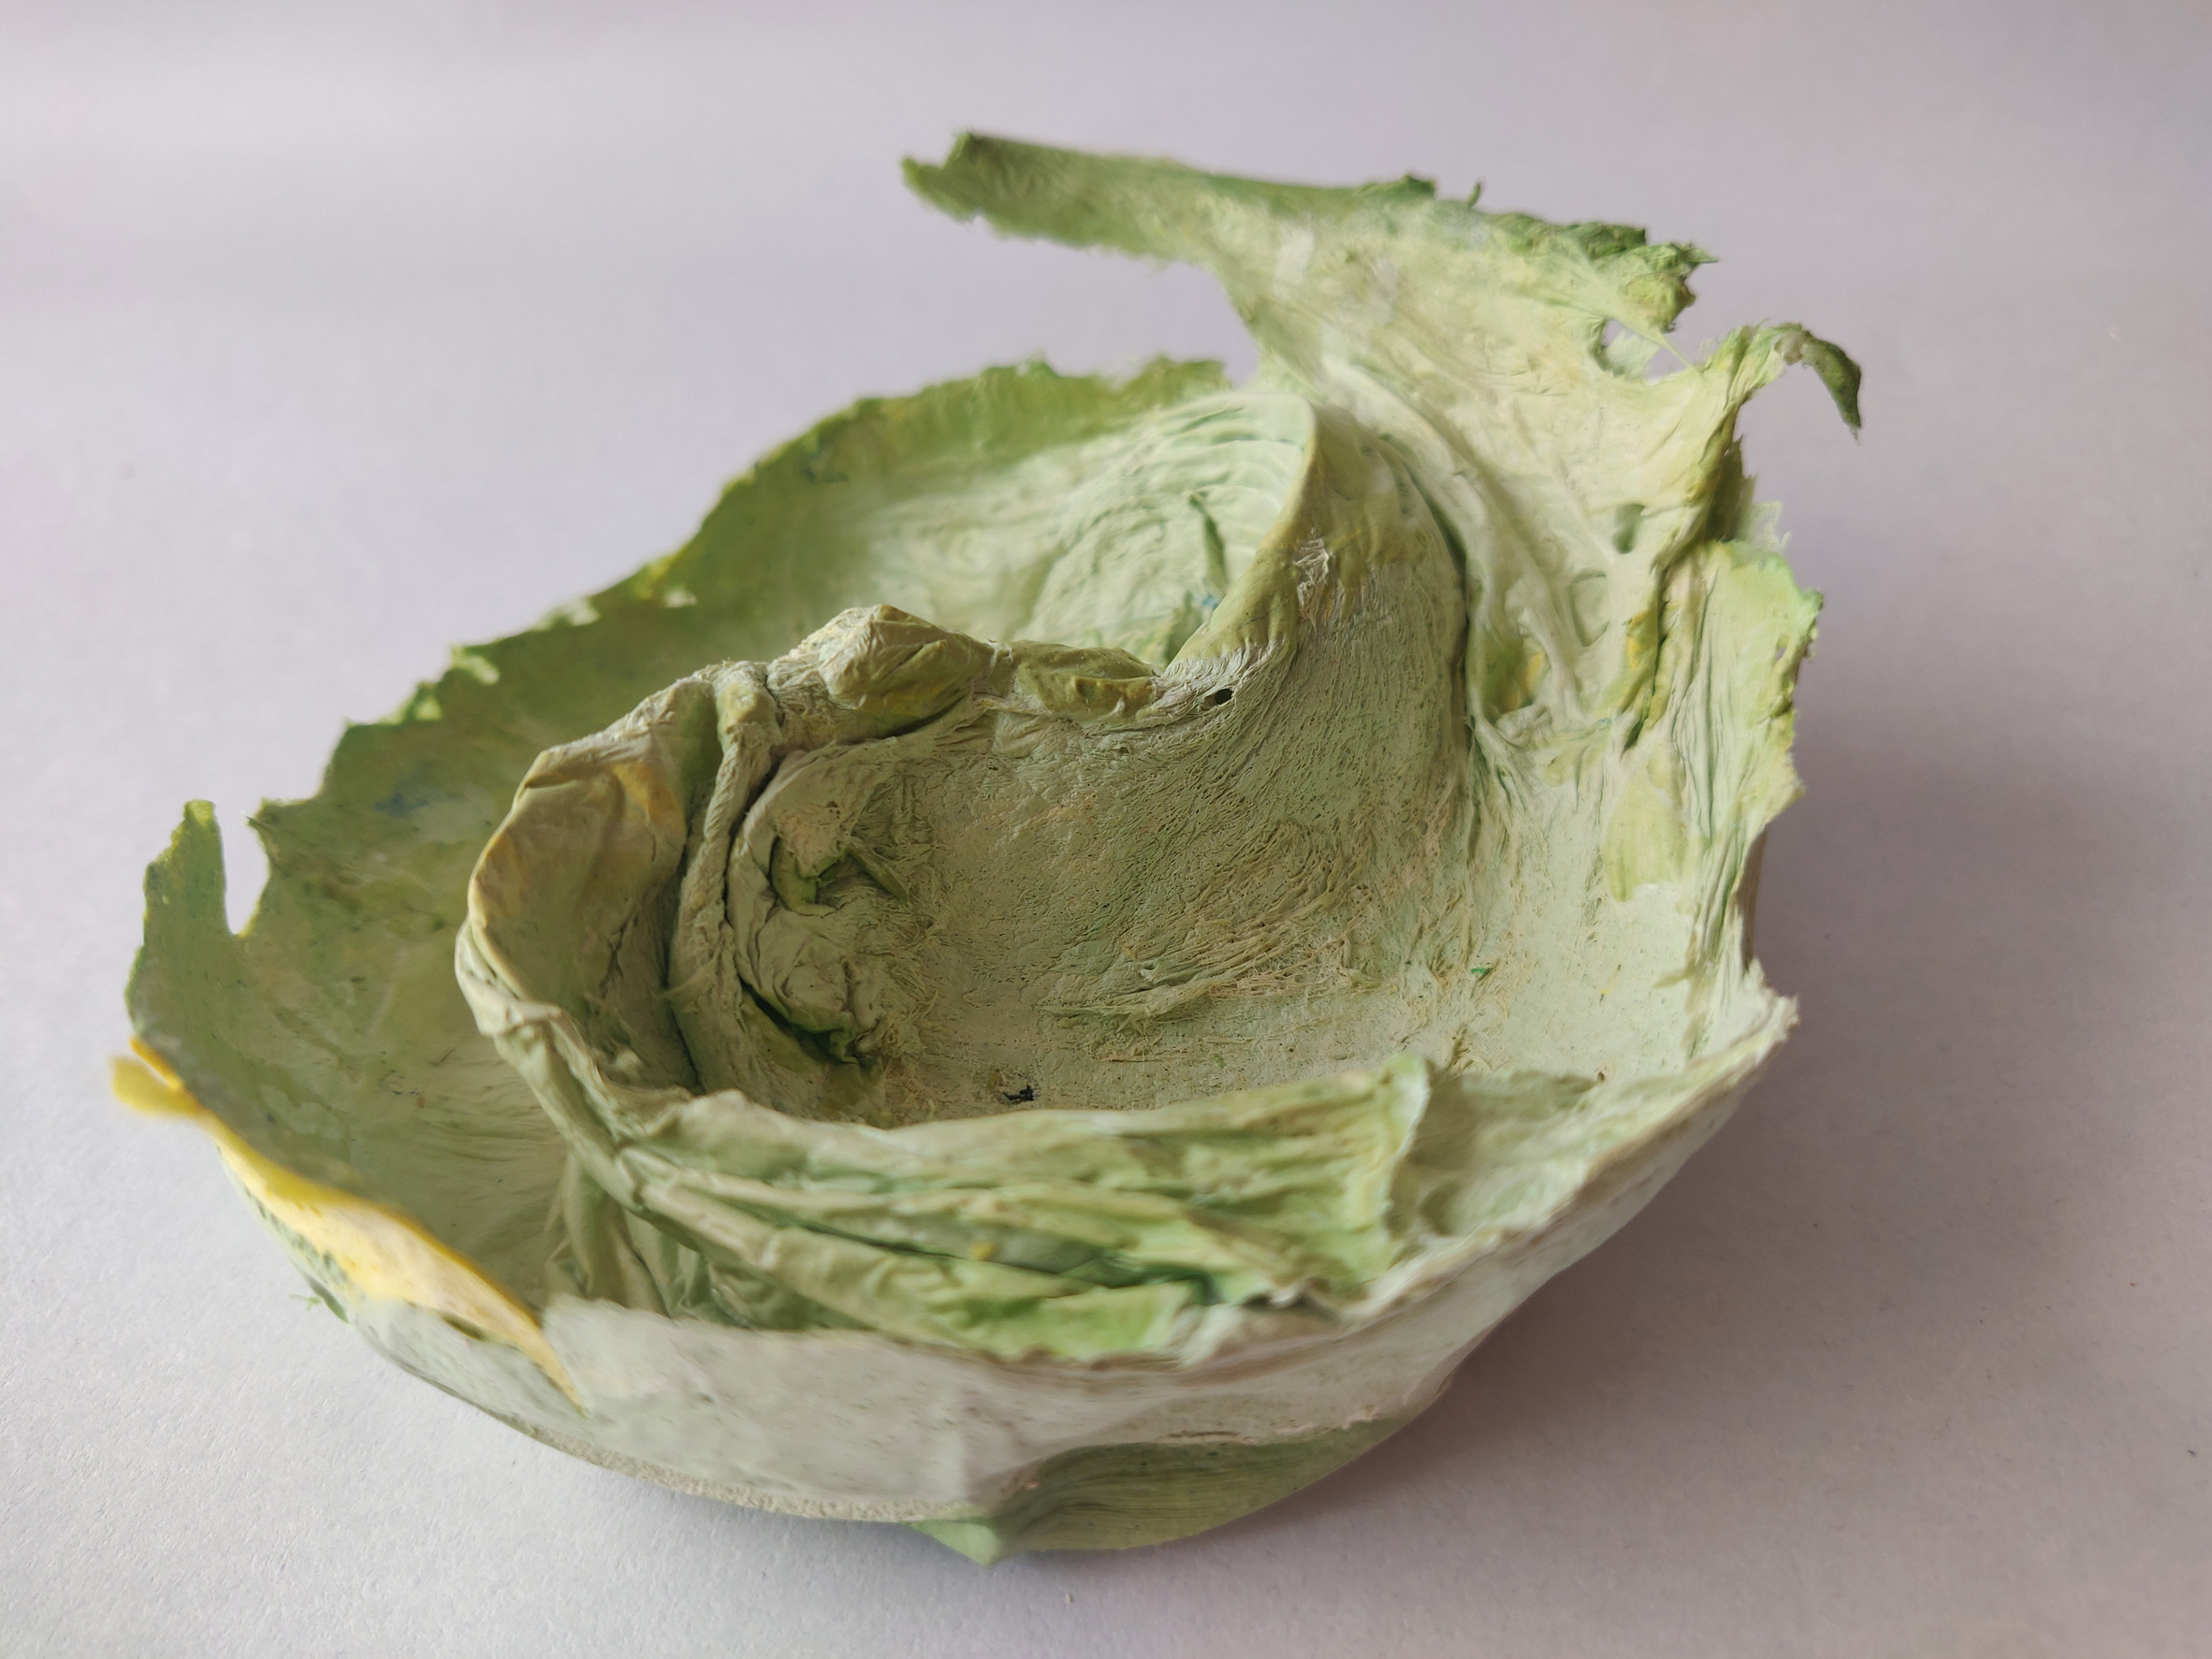 Green bowl from the Jugaad collection